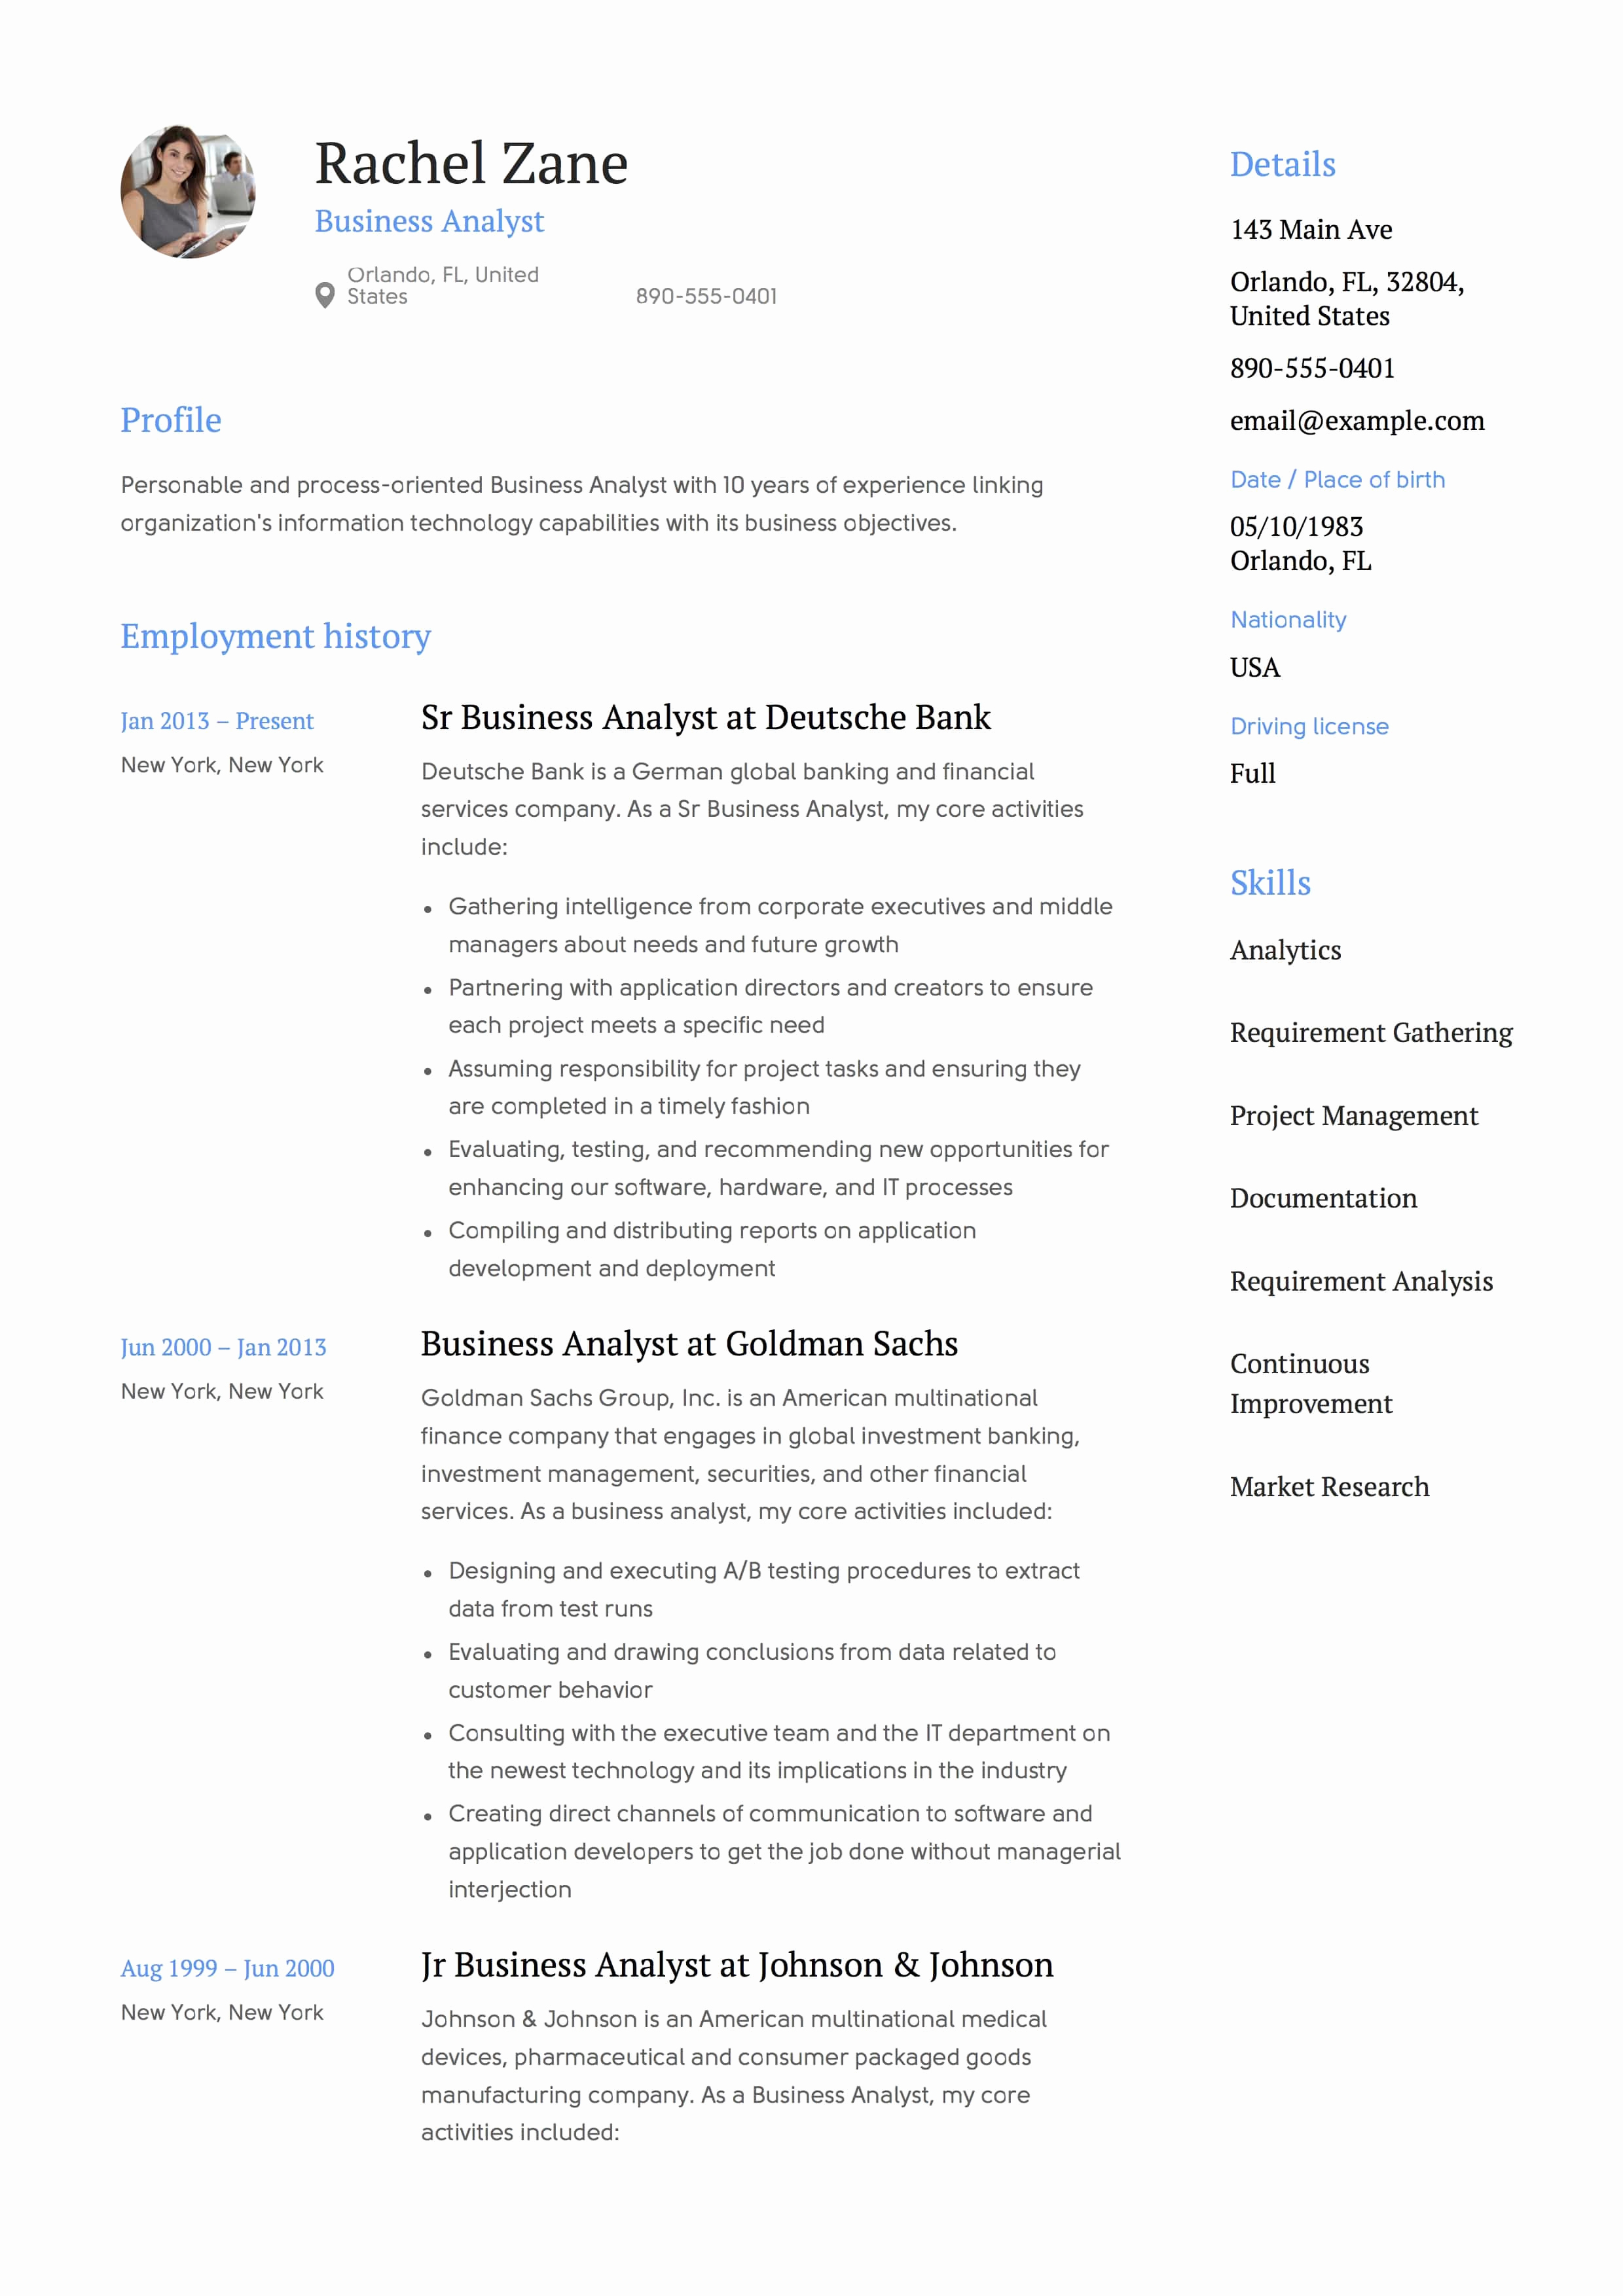 Sample Business Analyst Resume Fresh Full Guide Project Manager Resume & 12 Resume Samples